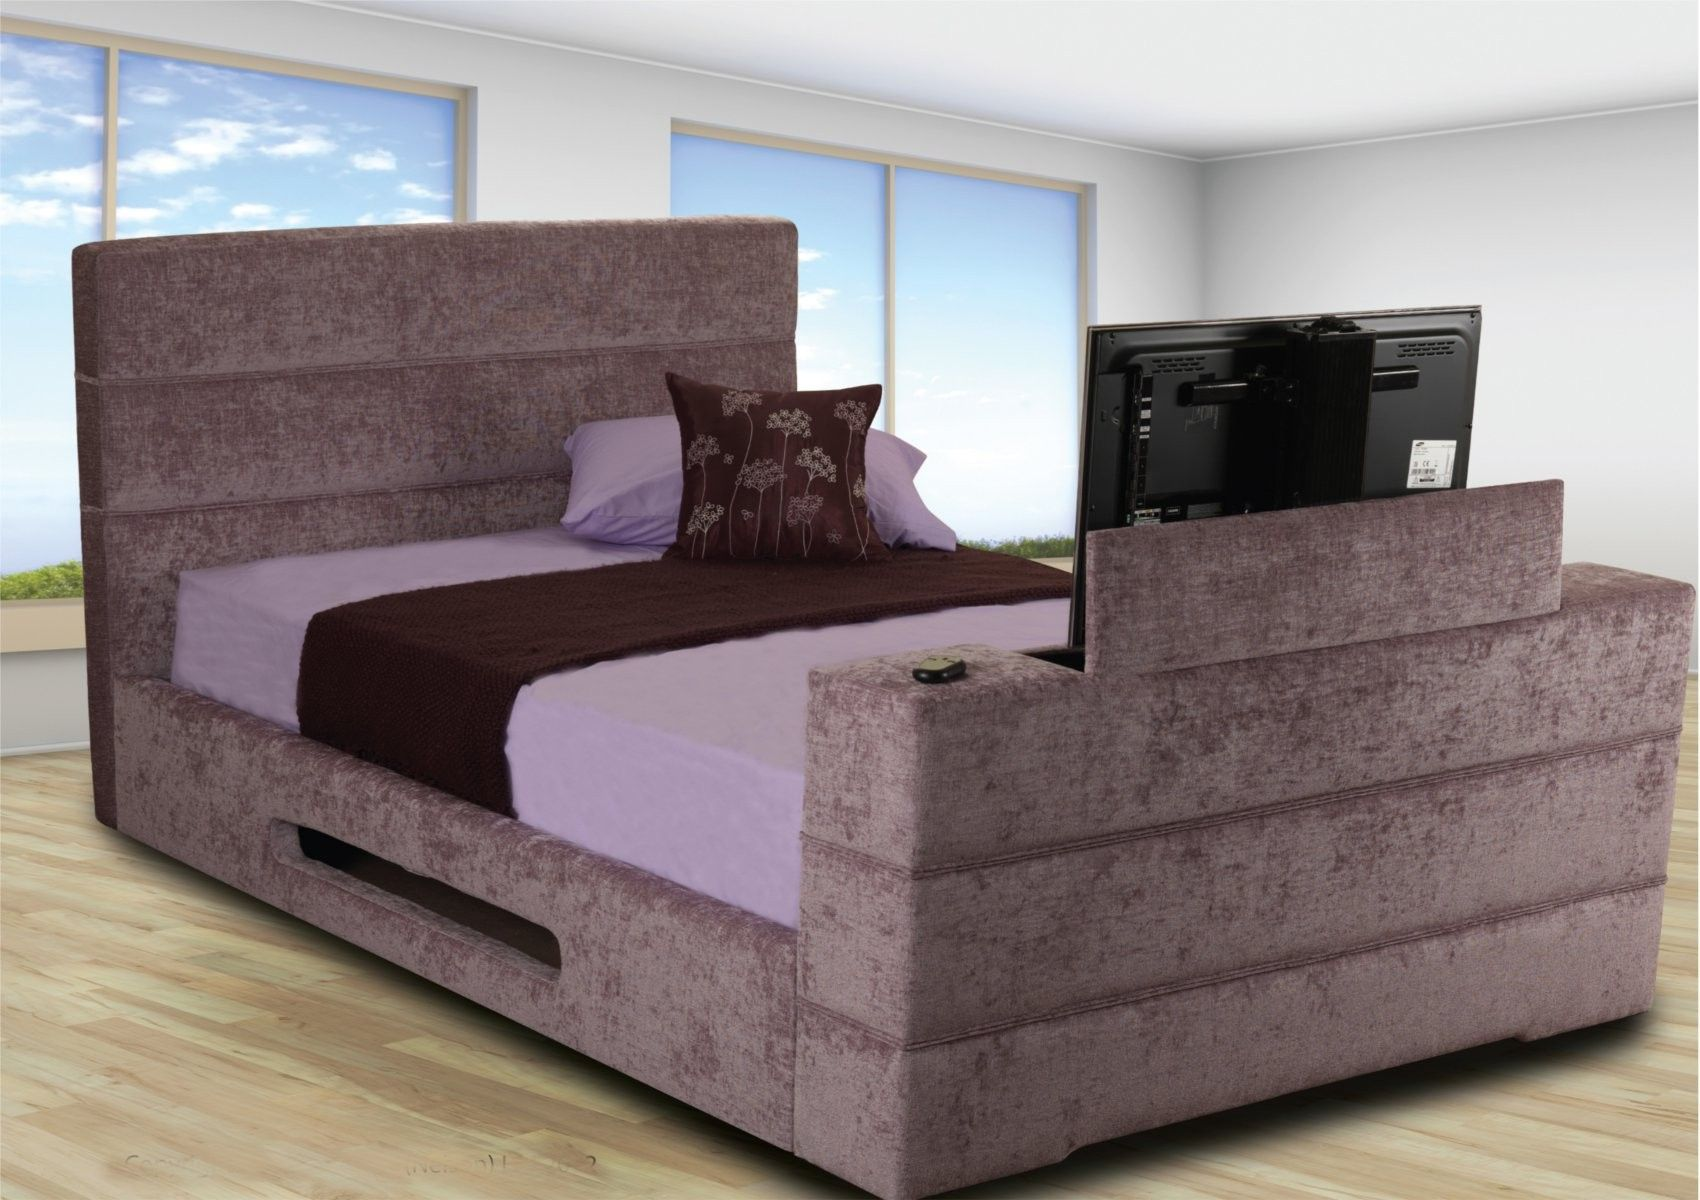 Image of Cool Beds With Built In TV